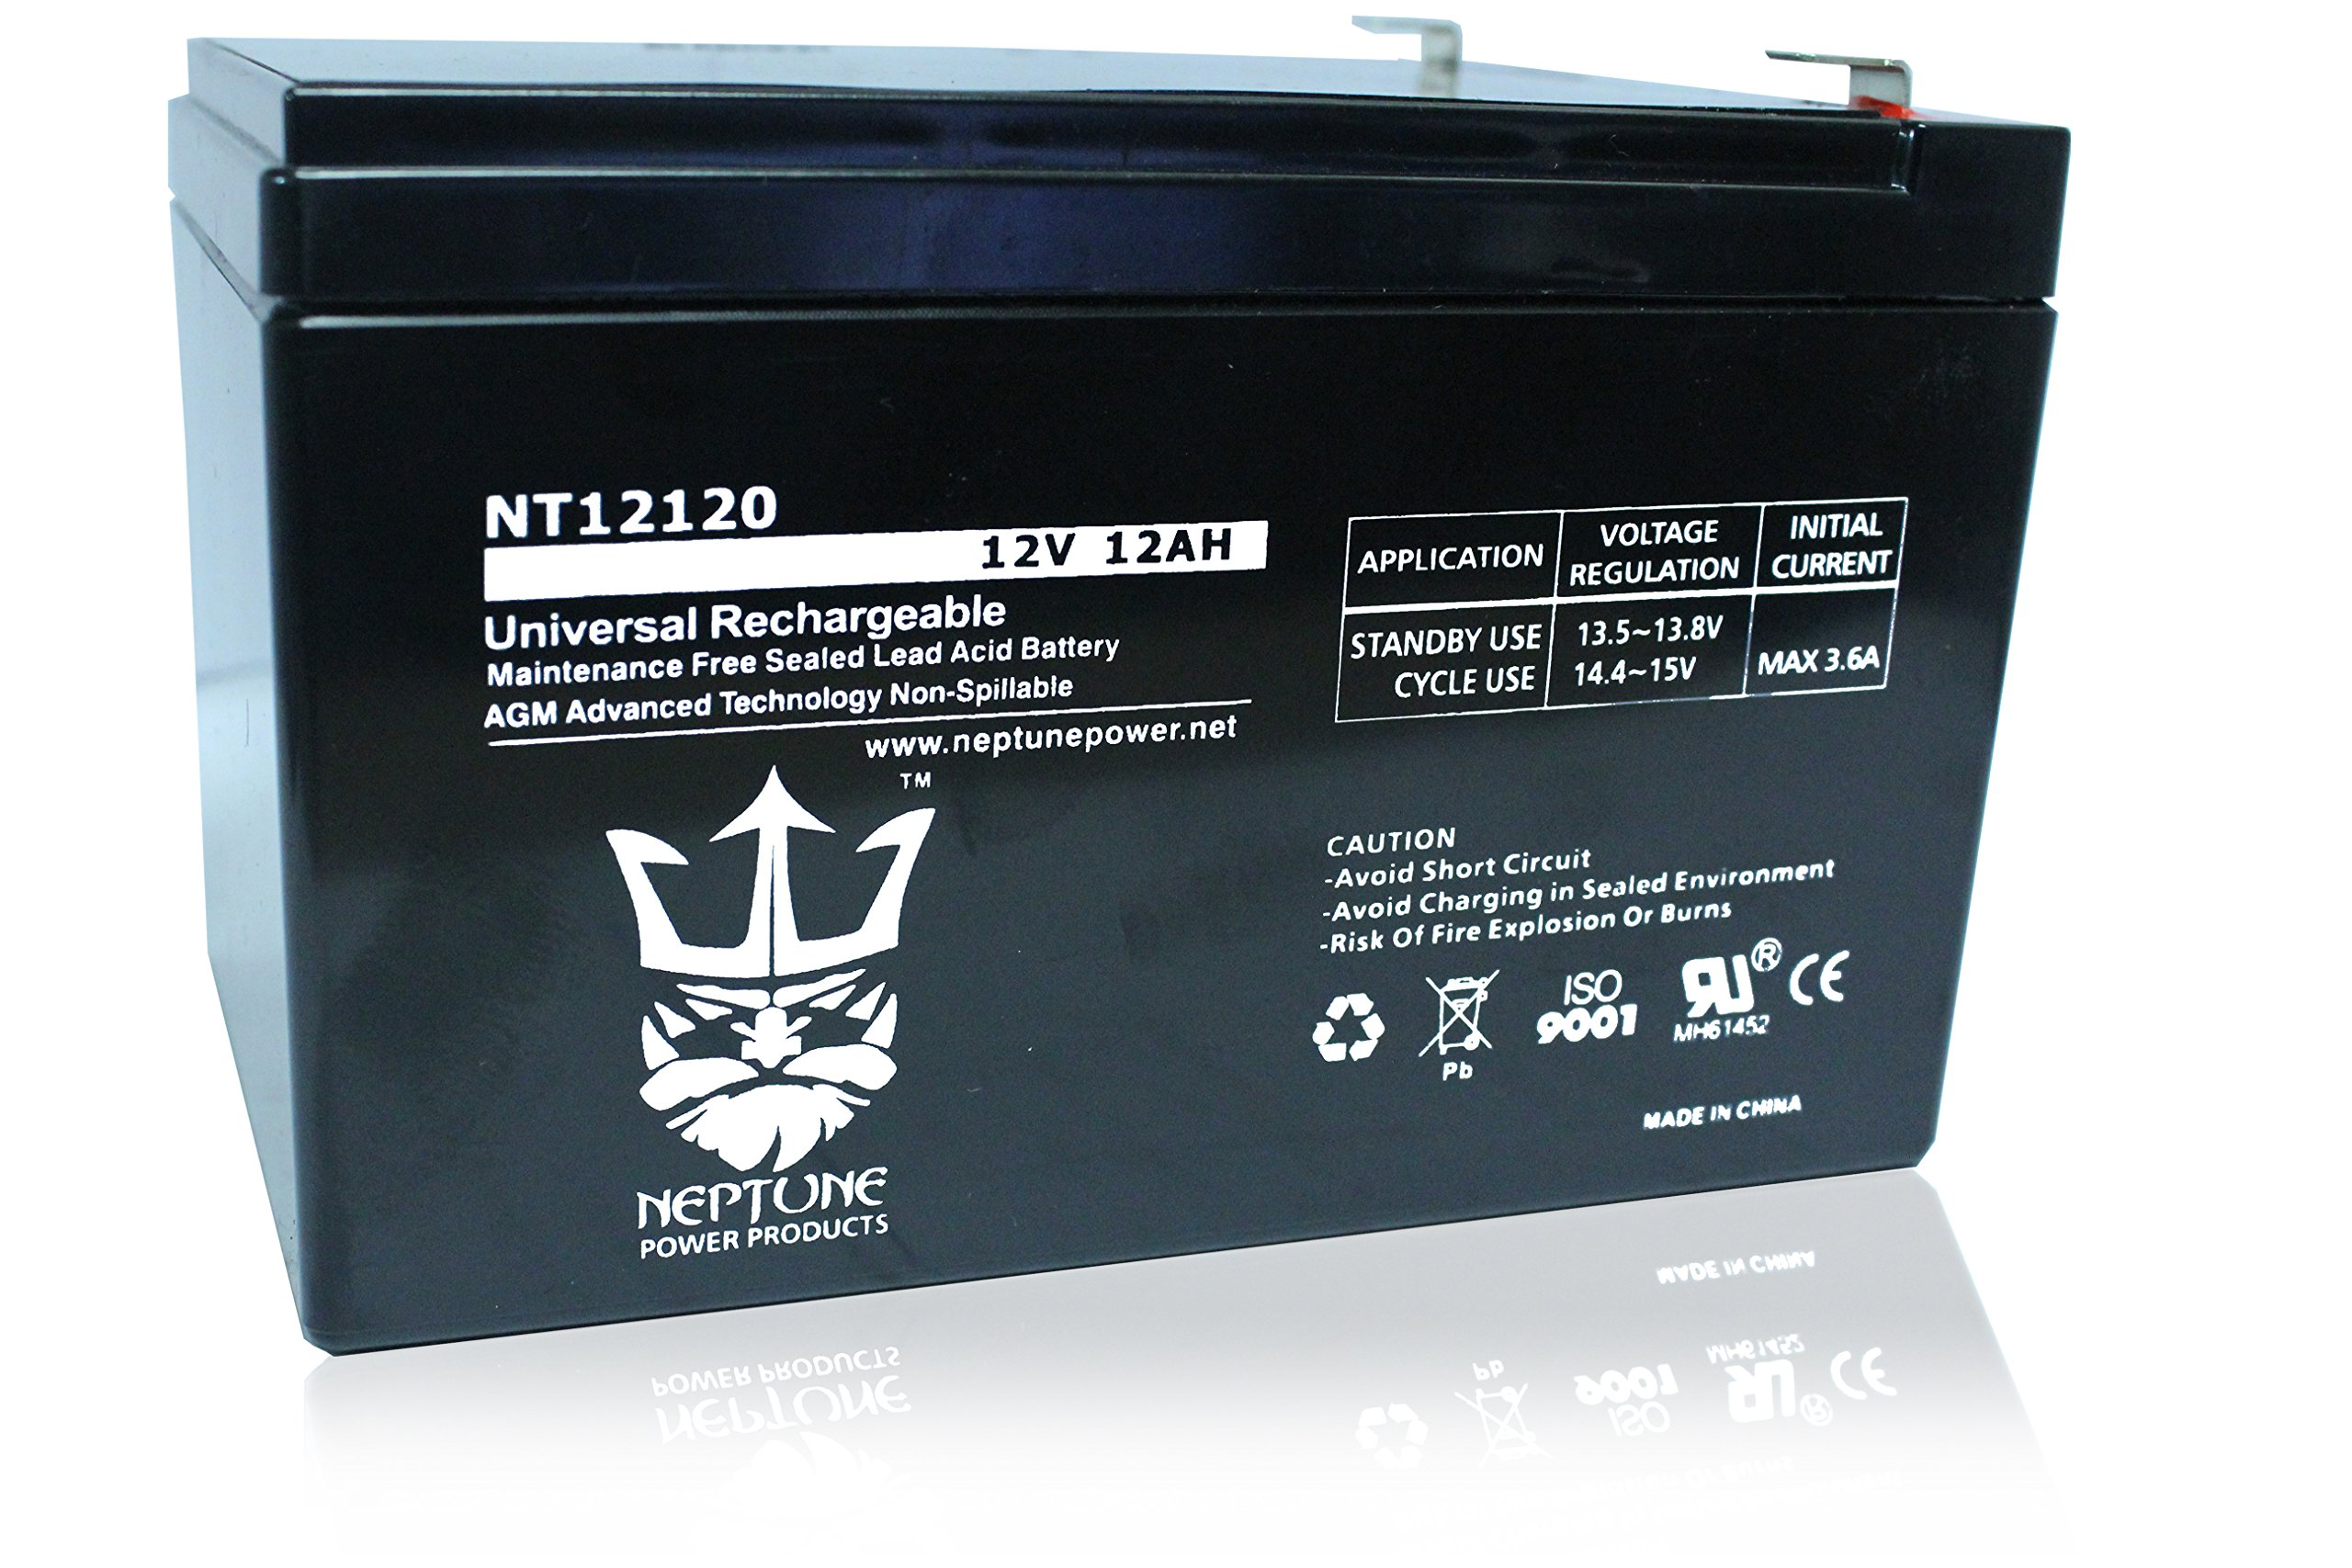 Neptune Power NT1212 F2, Replacement for ExpertPower EXP1212 12V12AH Rechargeable Battery